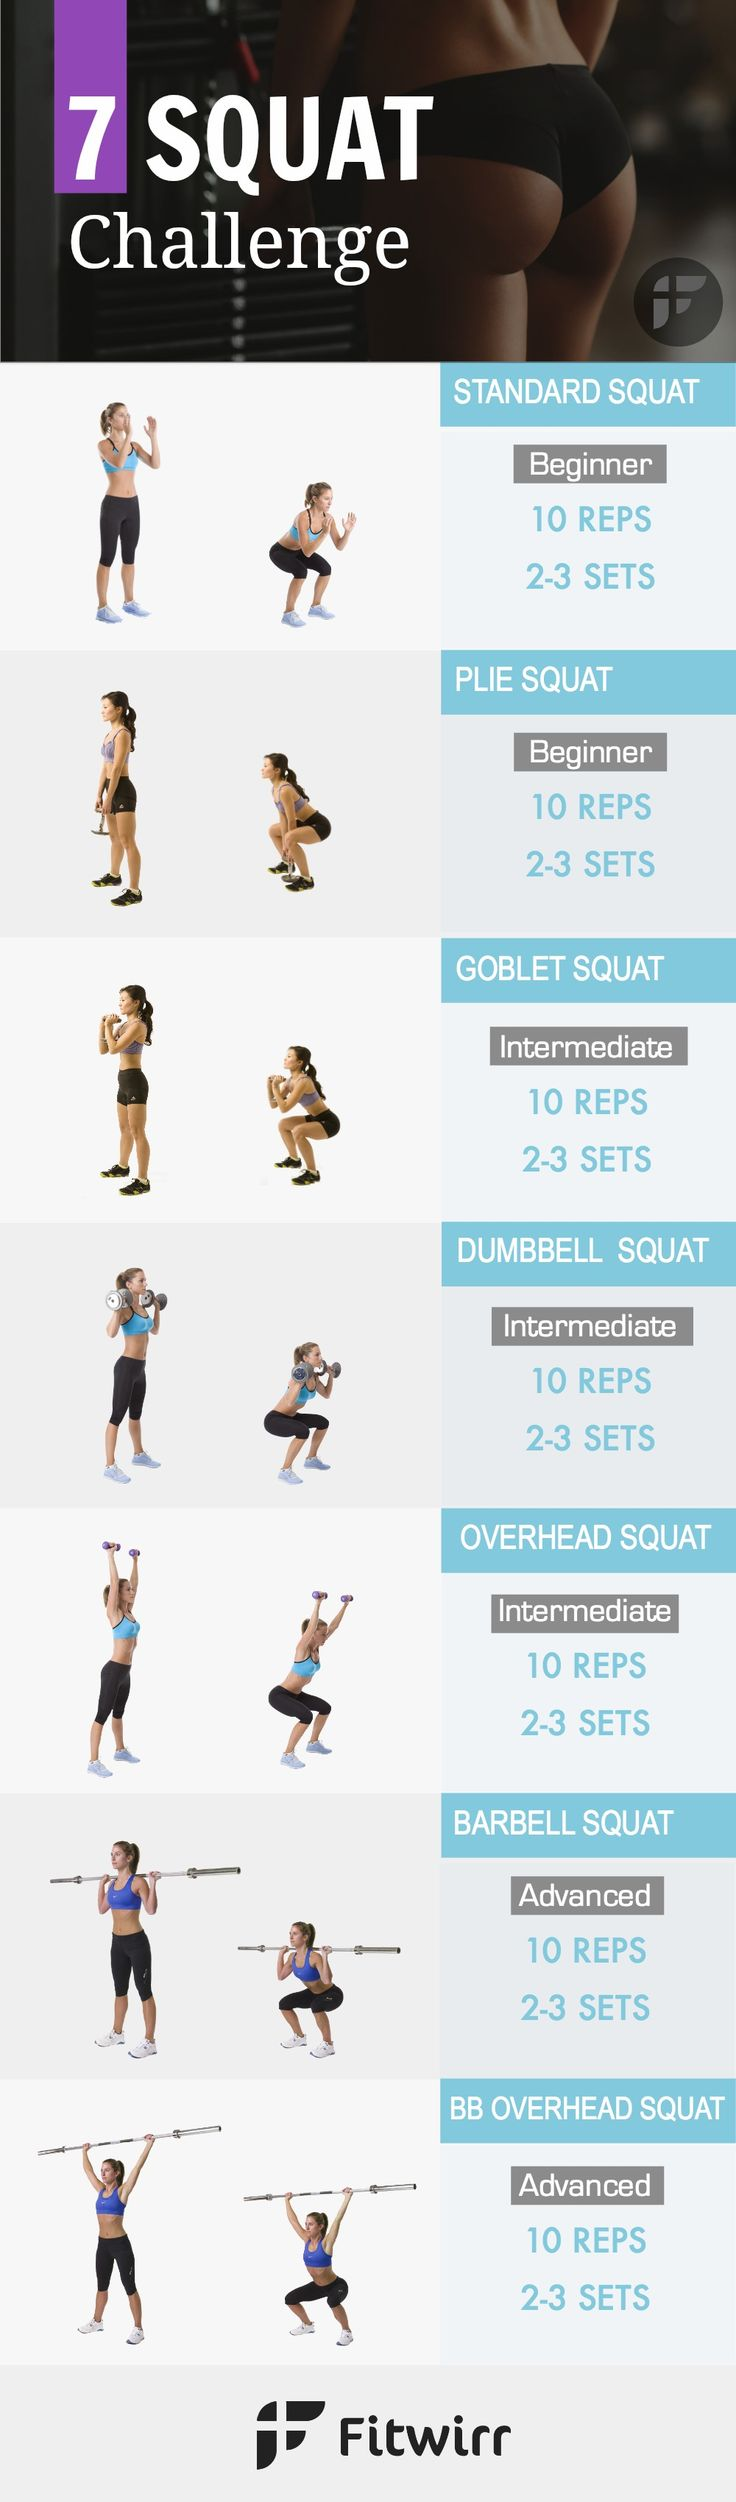 While a 30 day squat challenge is a great way to challenge yourself, you shouldn't do the same squat exercise everyday. Doing different squats target your glutes from multiple angles and shape the perfect butt. Get this squat challenge and get started on your booty.